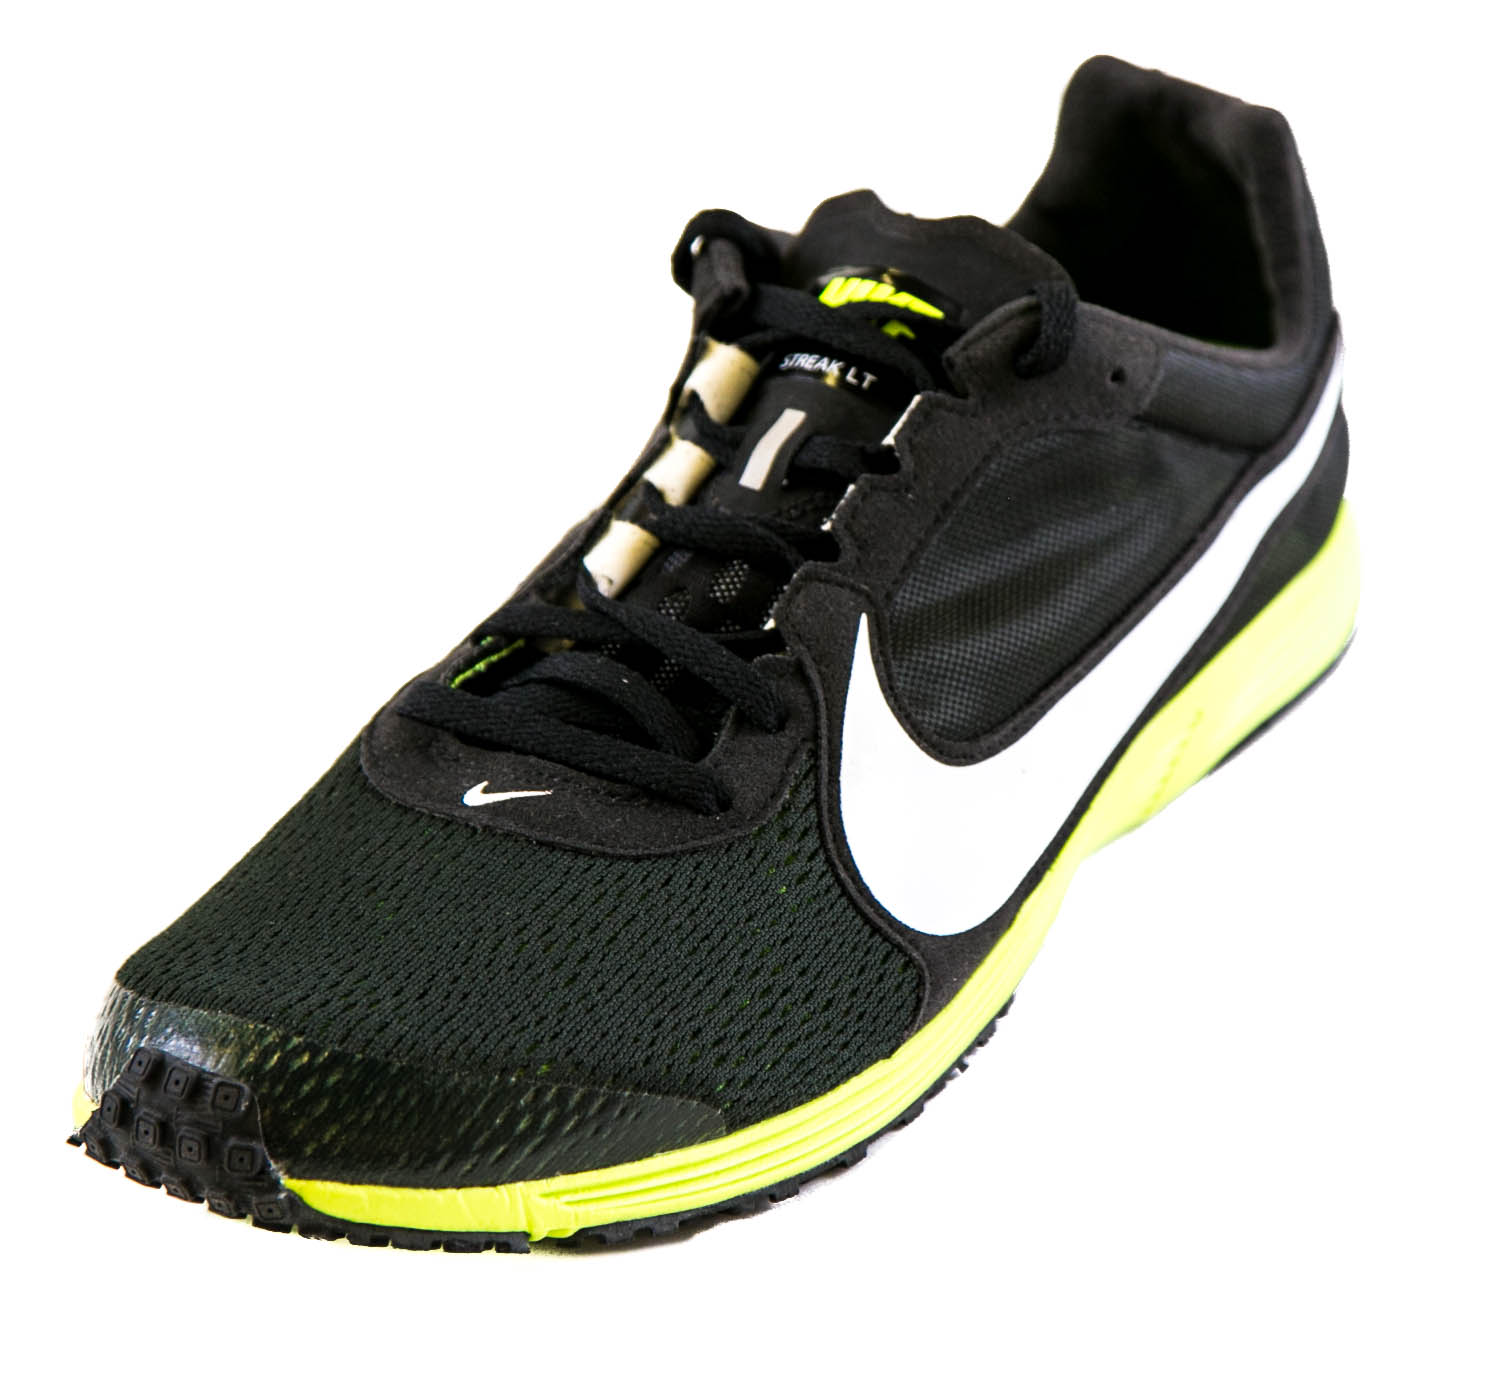 Nike Men's Zoom Streak LT 2 Trail Running Shoes